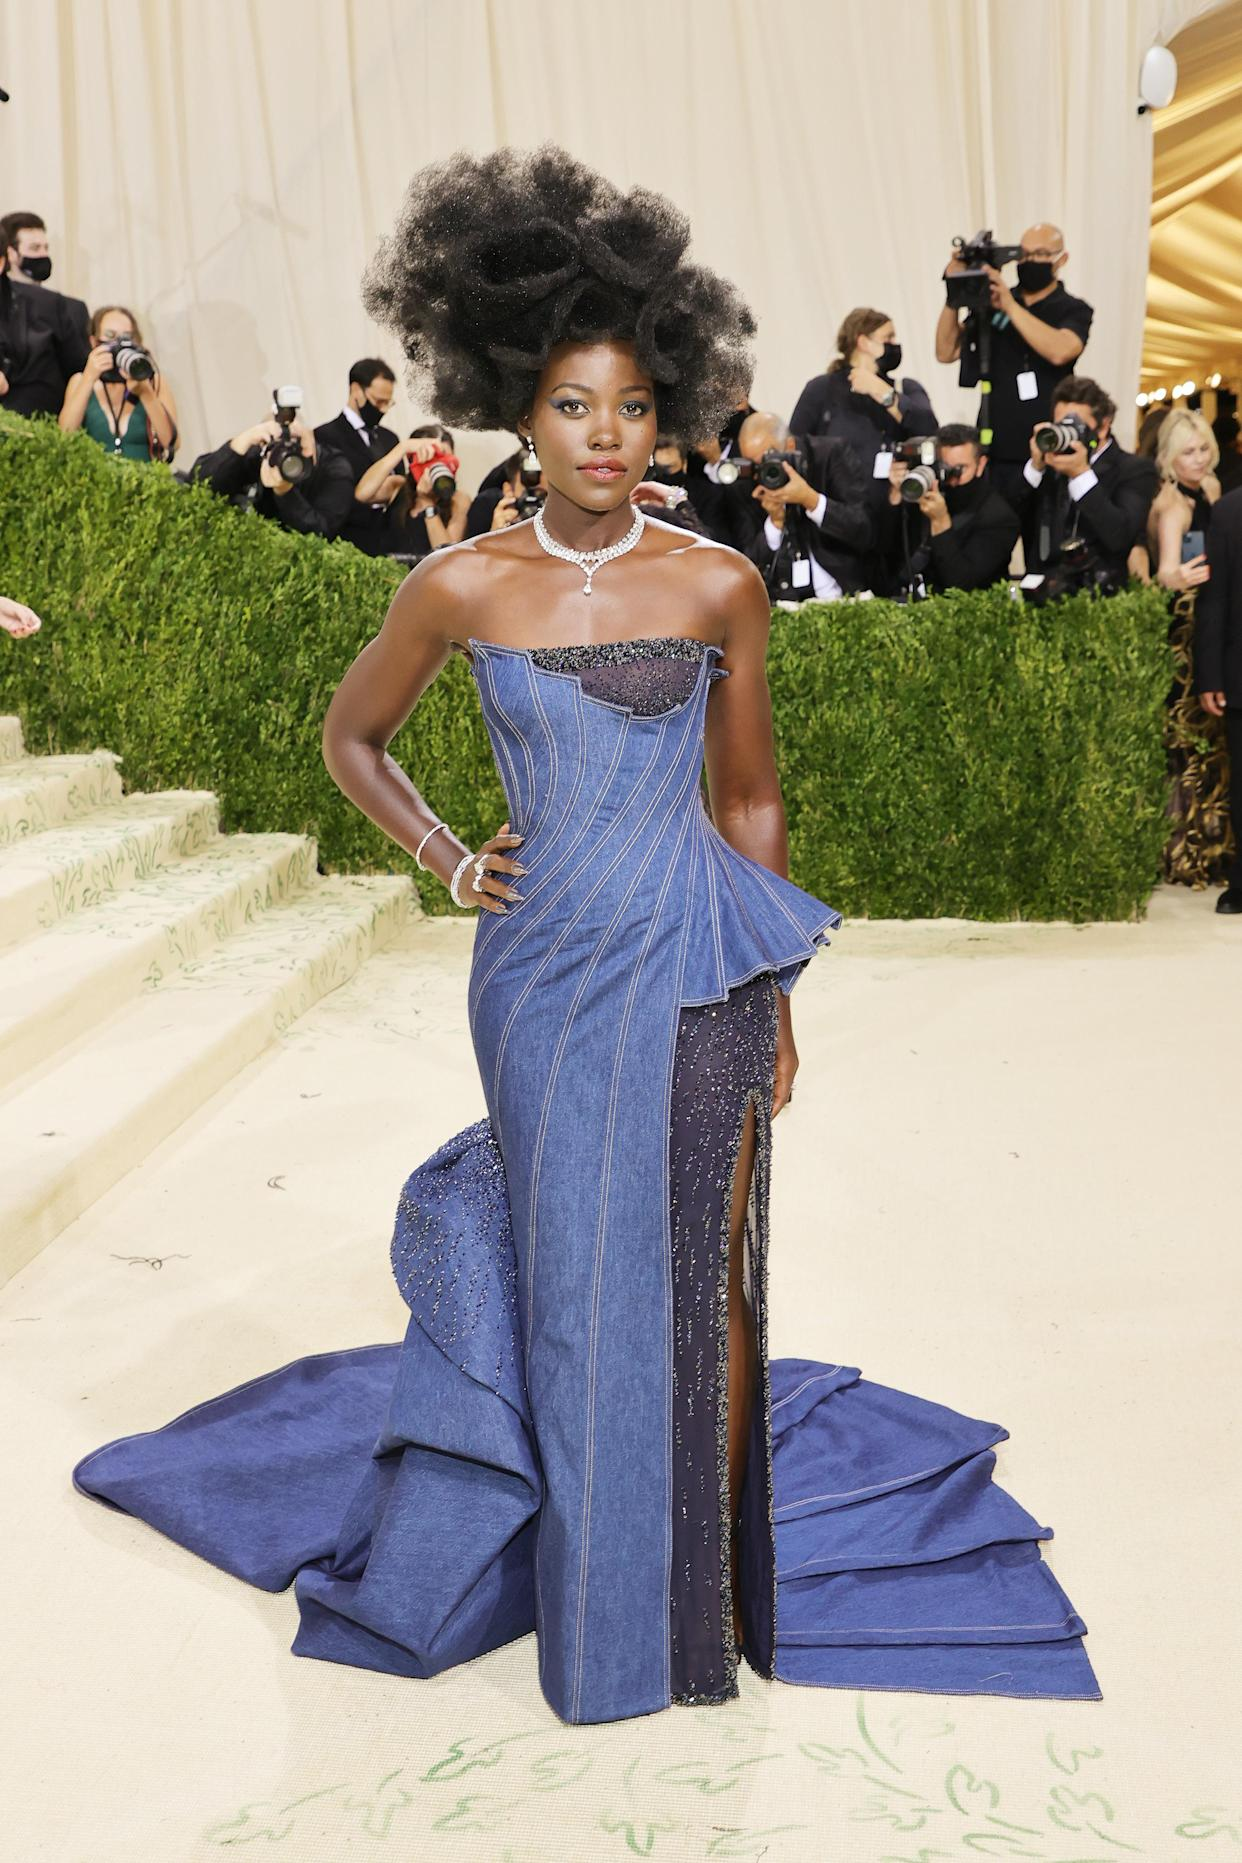 Lupita Nyong'o attends The 2021 Met Gala Celebrating In America: A Lexicon Of Fashion at Metropolitan Museum of Art on September 13, 2021 in New York City. (Getty Images)